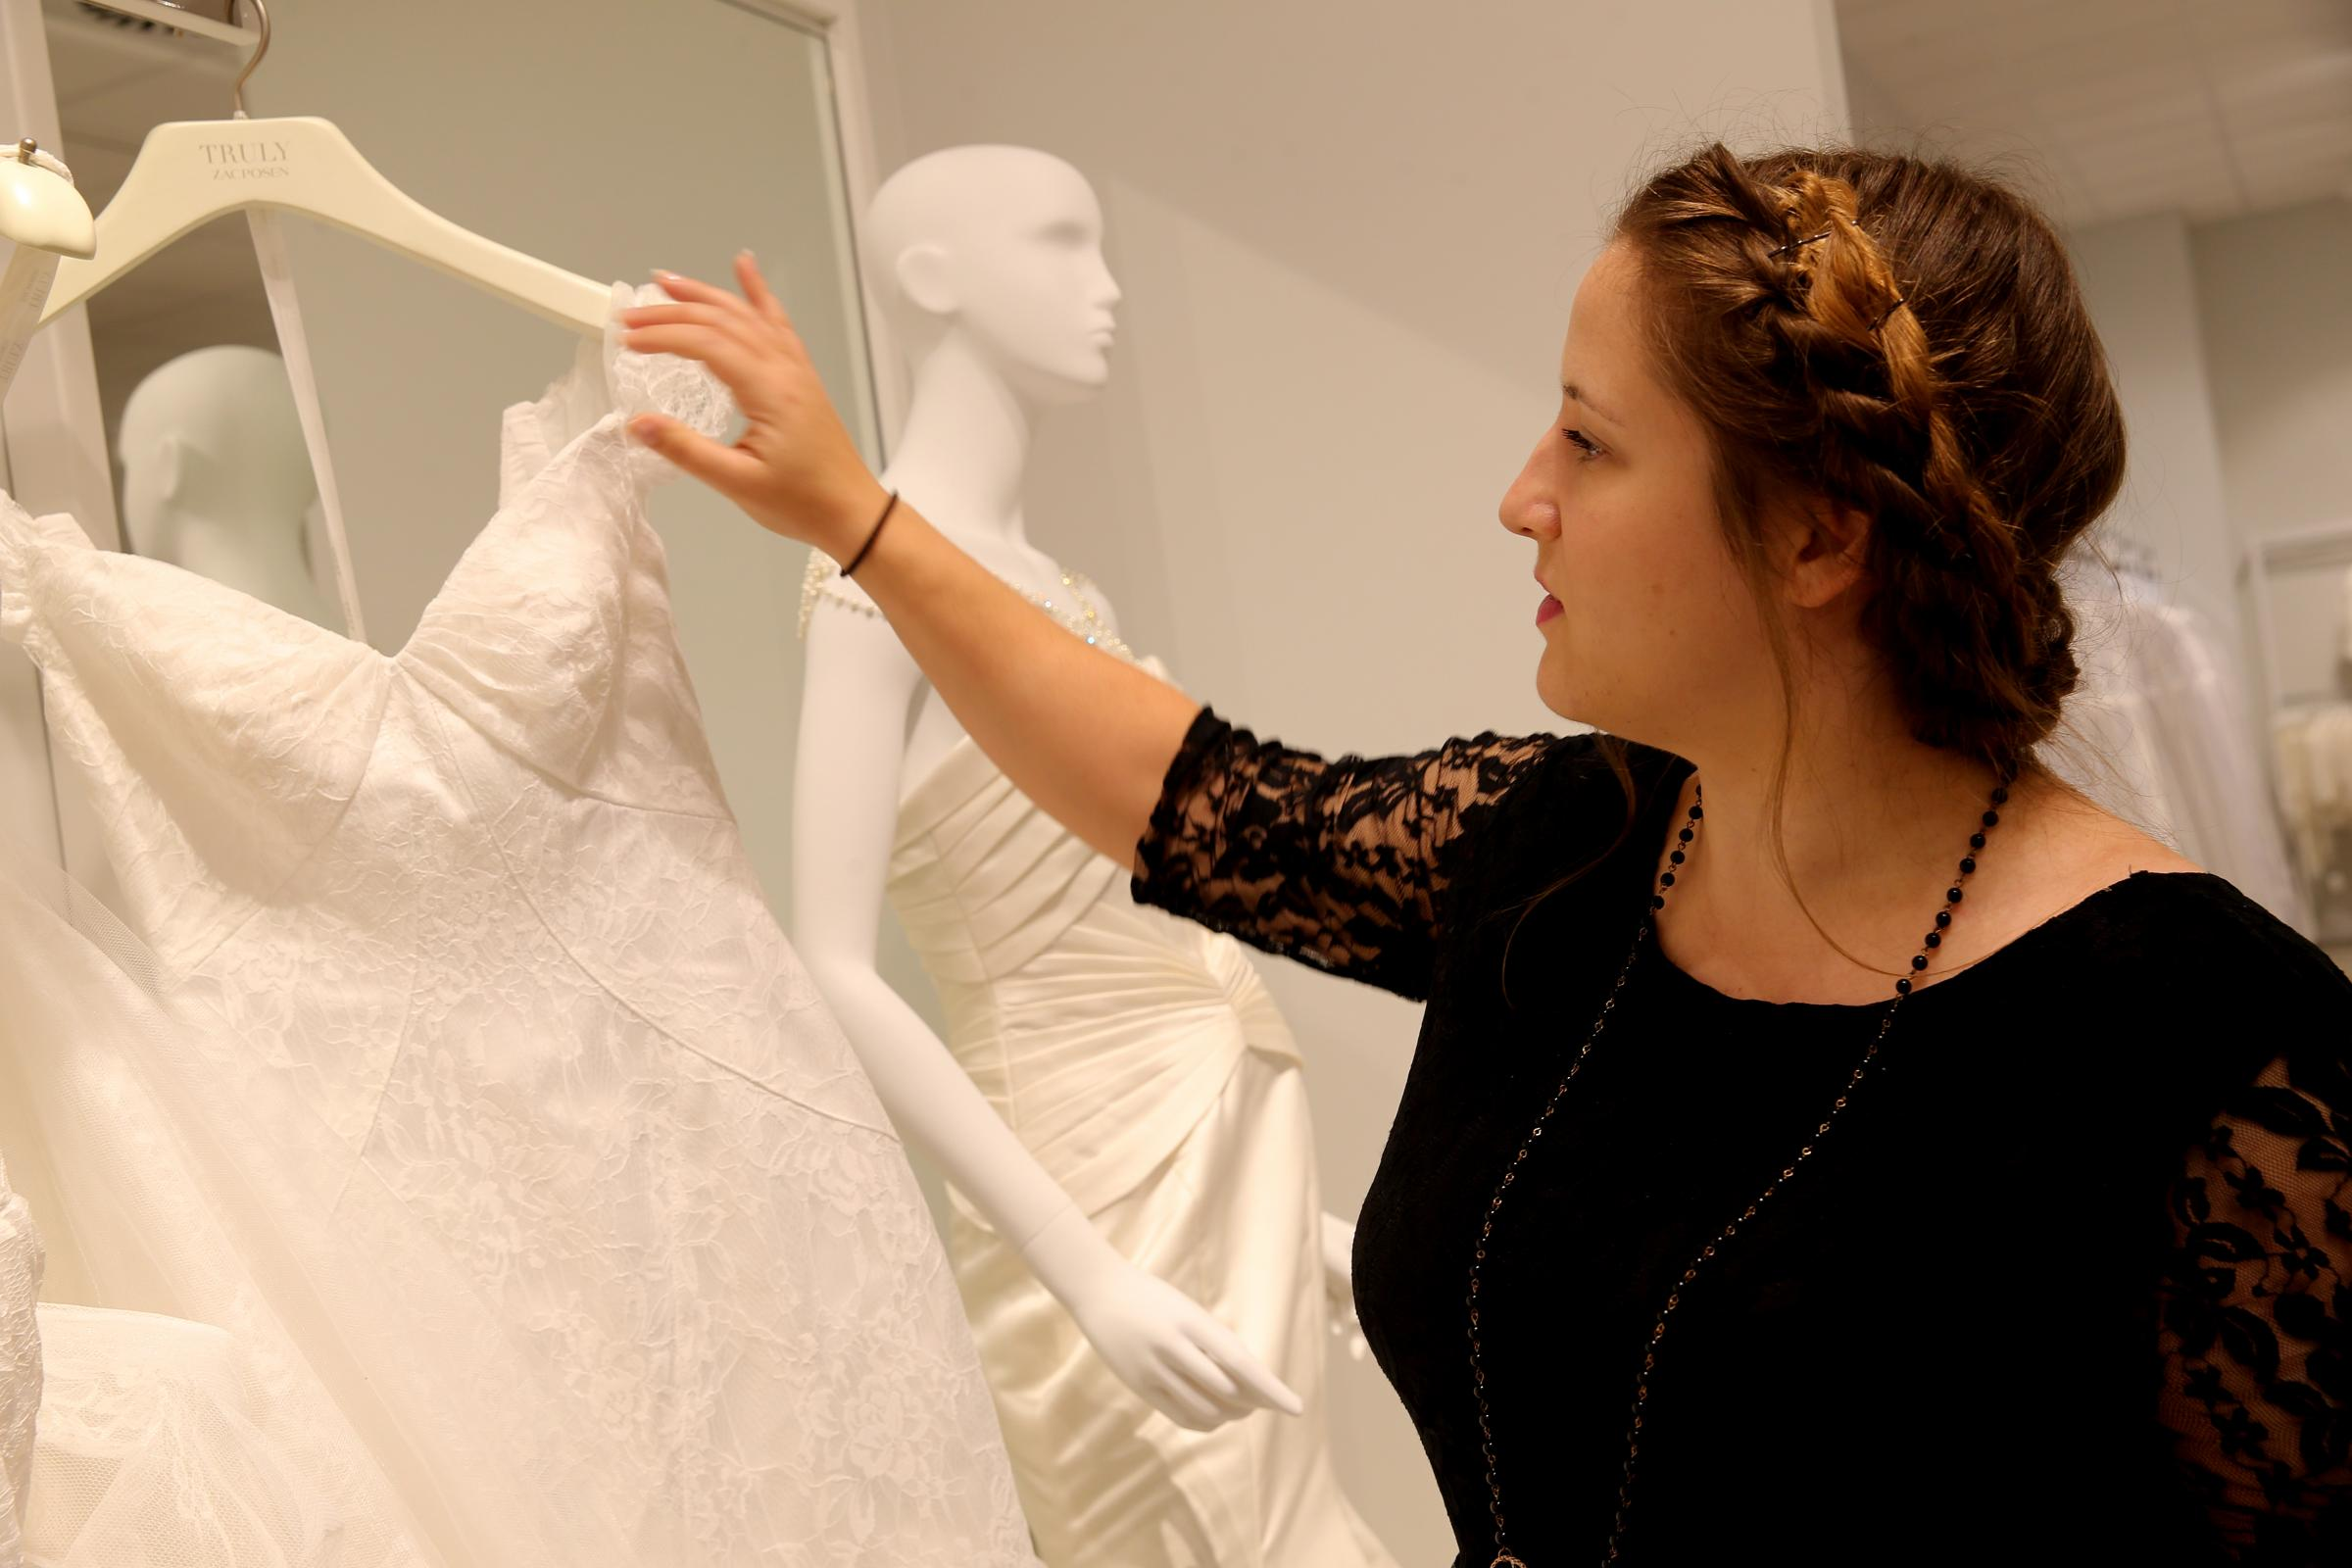 Our features writer shares her search for a wedding dress | St ...